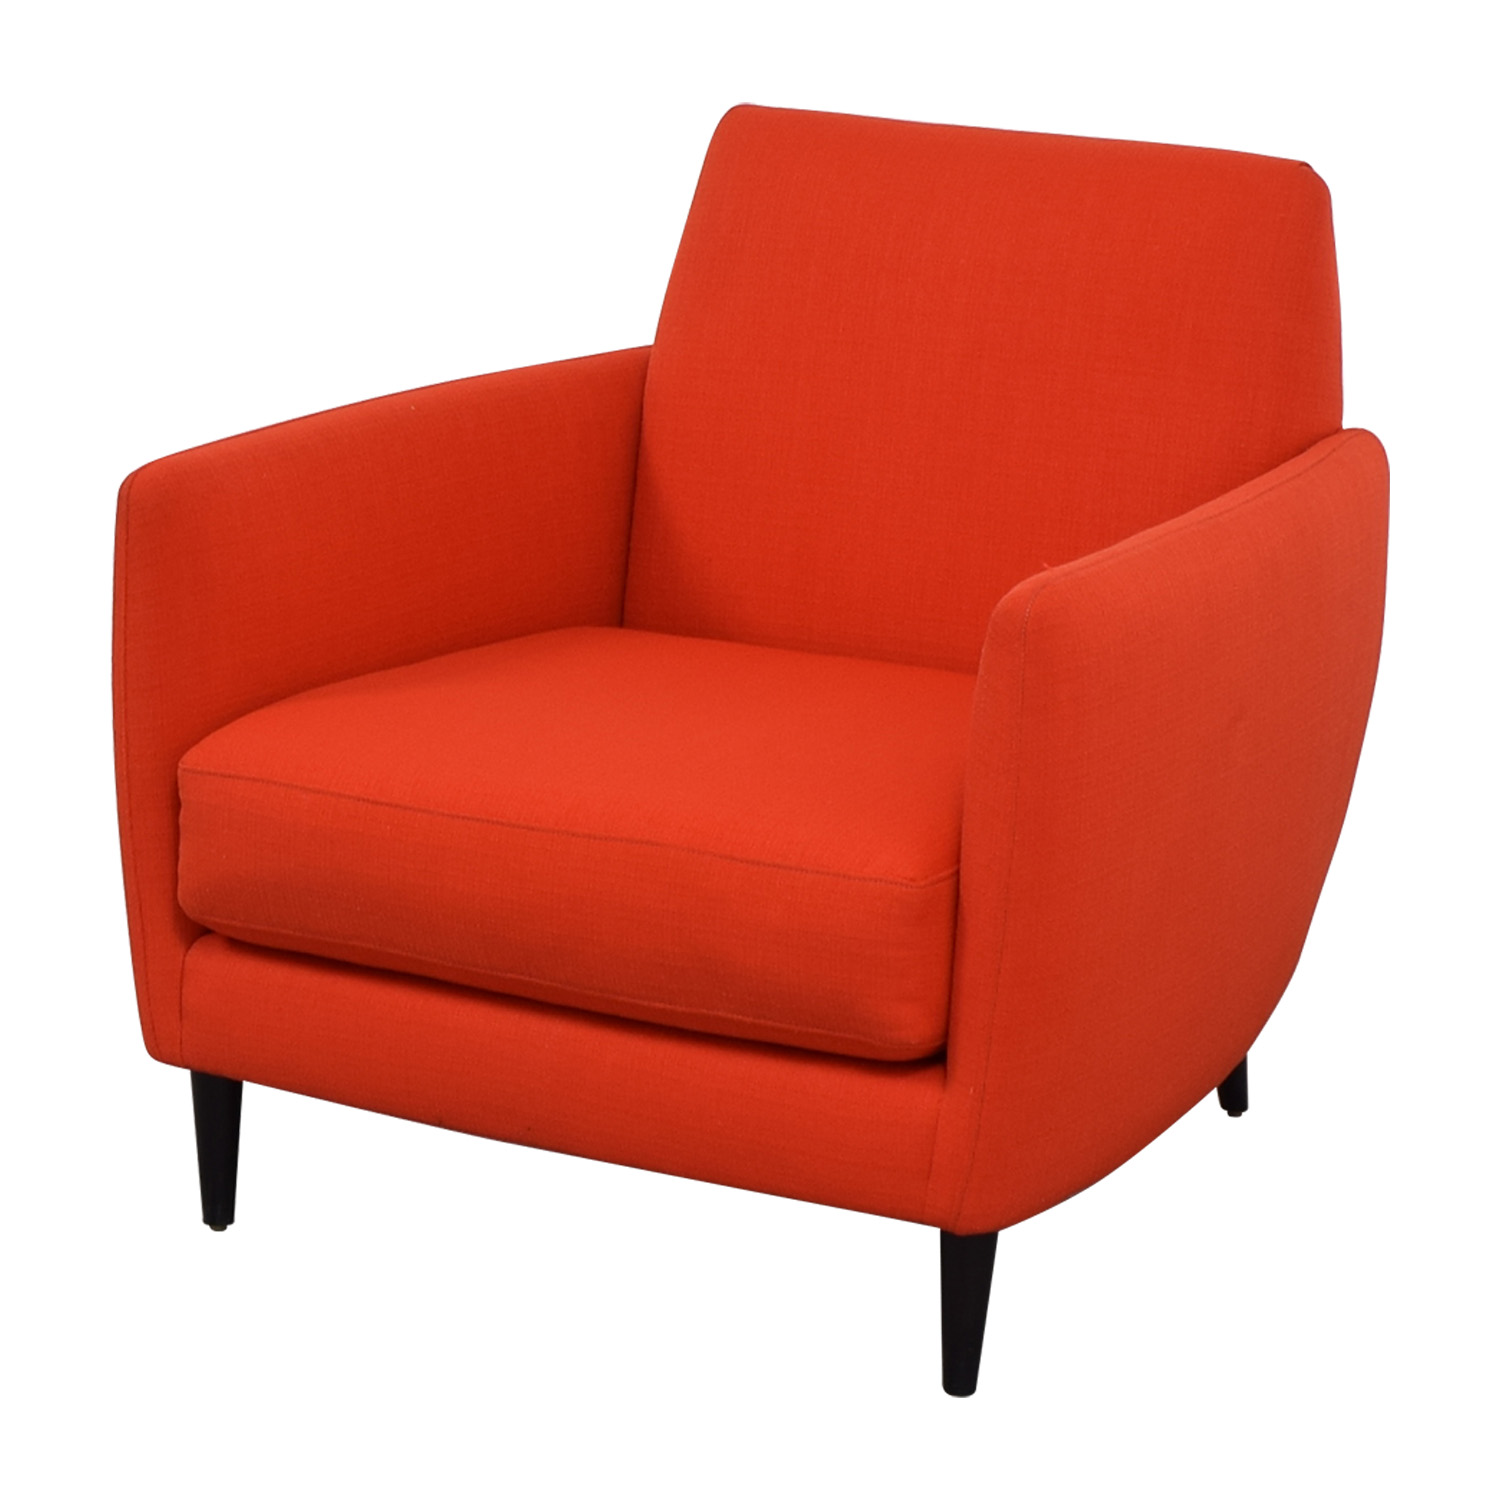 CB2 CB2 Orange Red Parlour Chair nyc